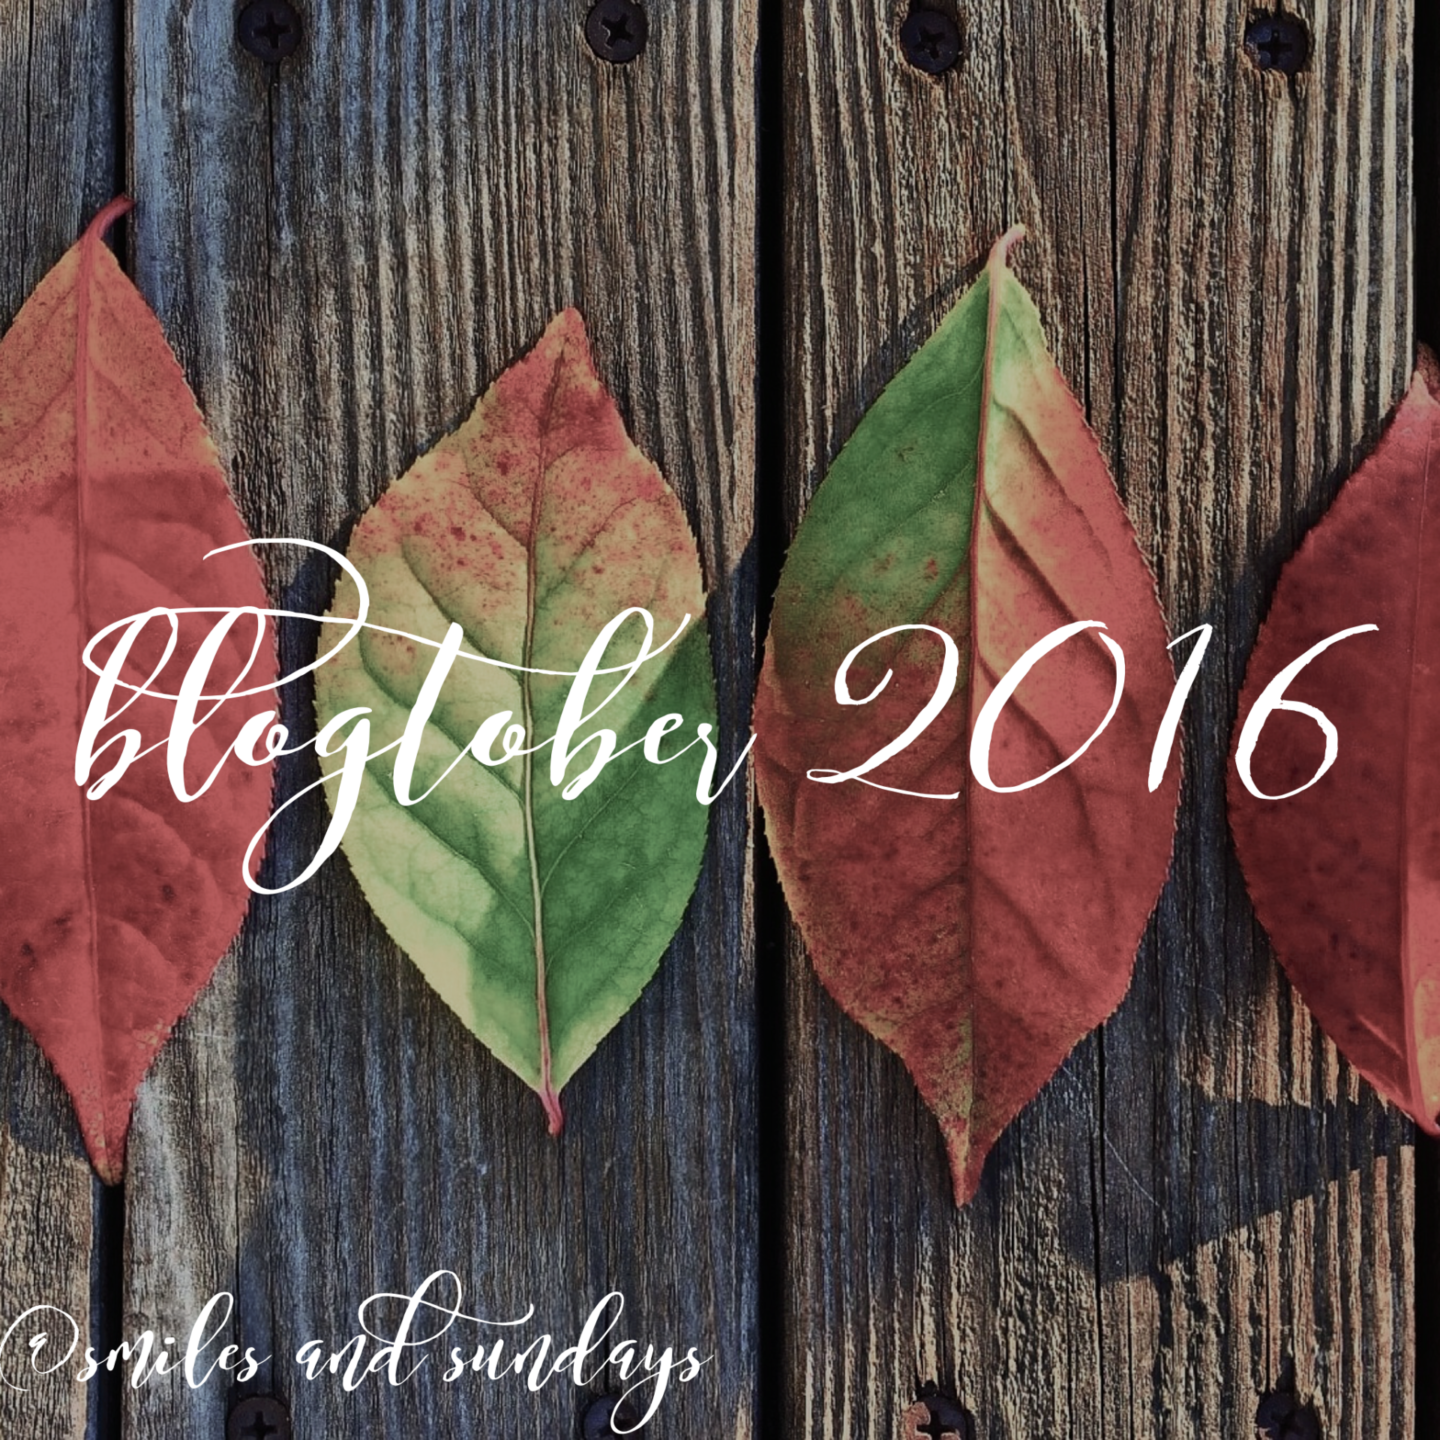 Blogtober 3 and 4